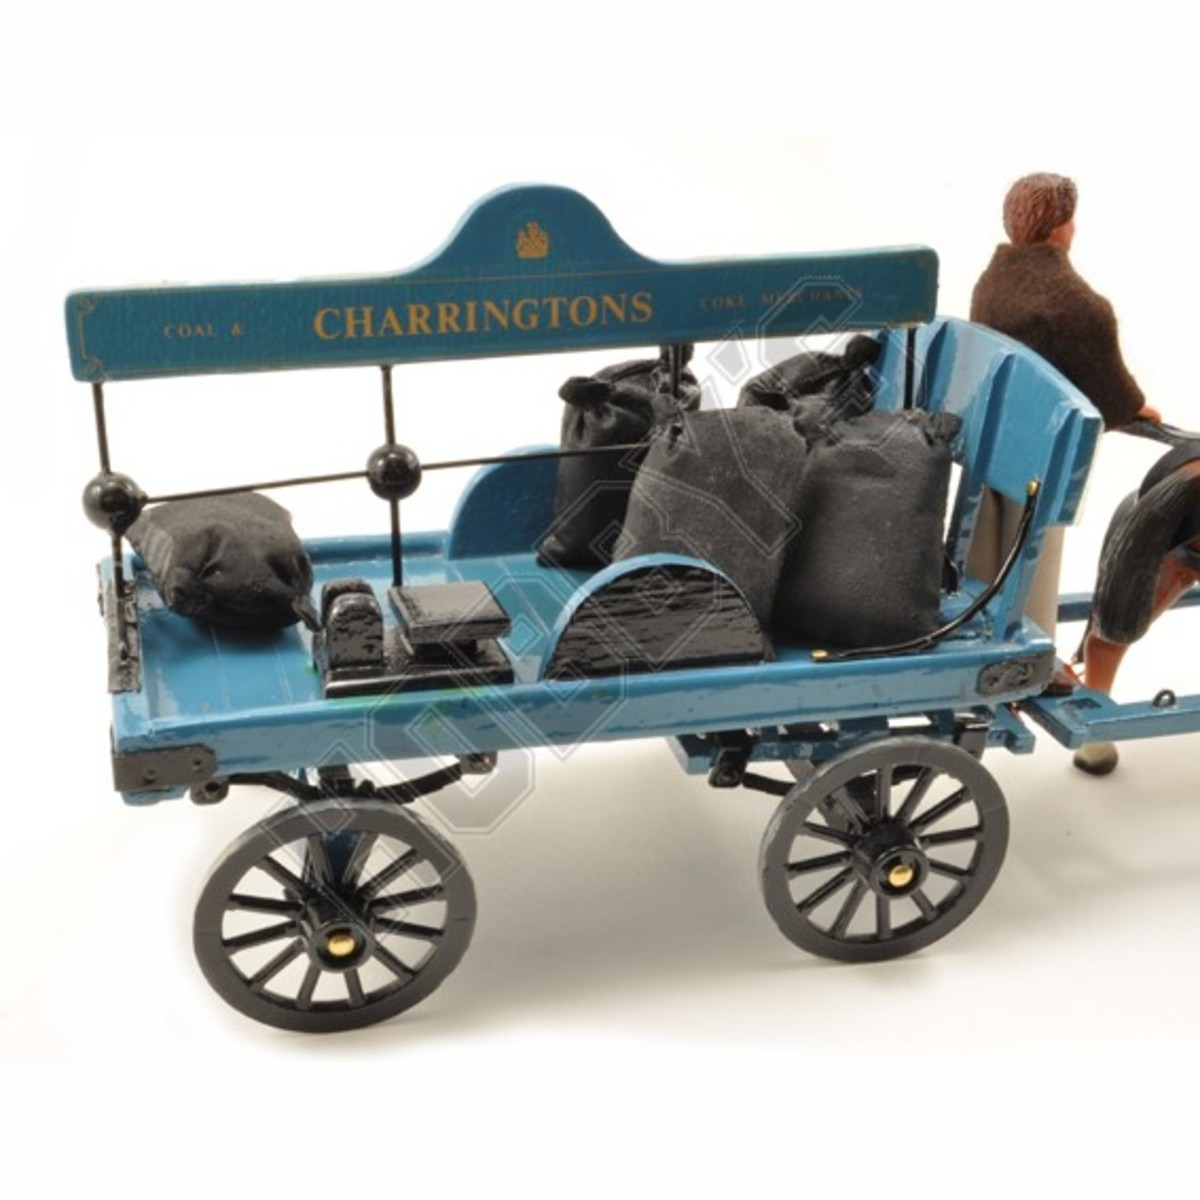 Horse-drawn coal delivery cart in model form from Hobby's UK - the railway companies also owned delivery carts